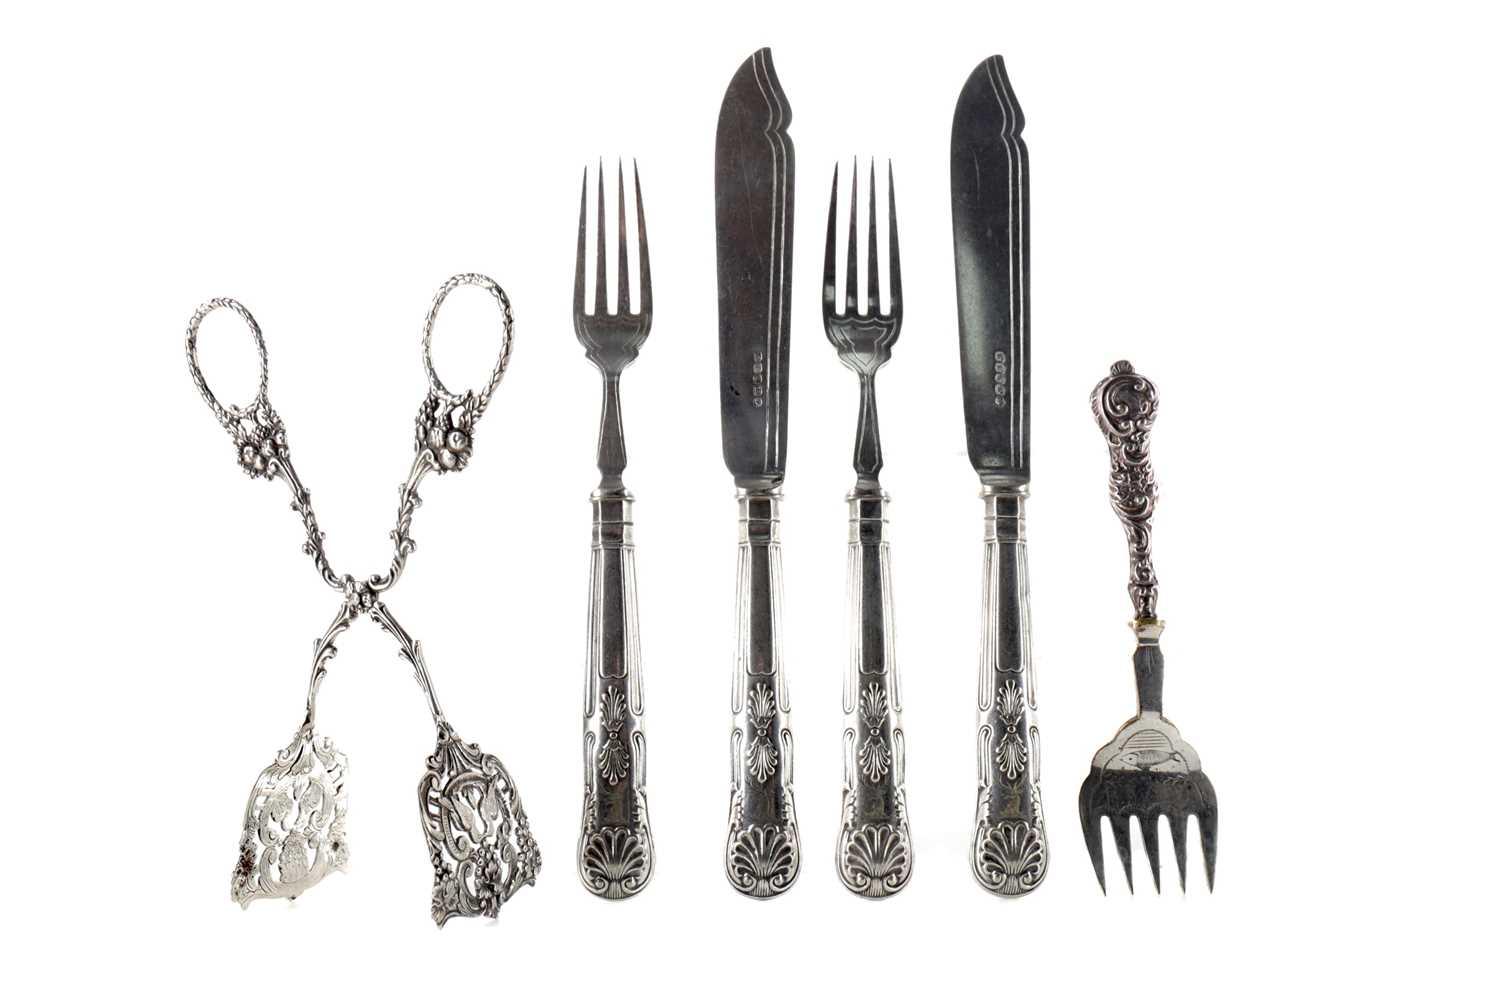 Lot 482 - A COLLECTION OF SILVER AND PLATED FLATWARE